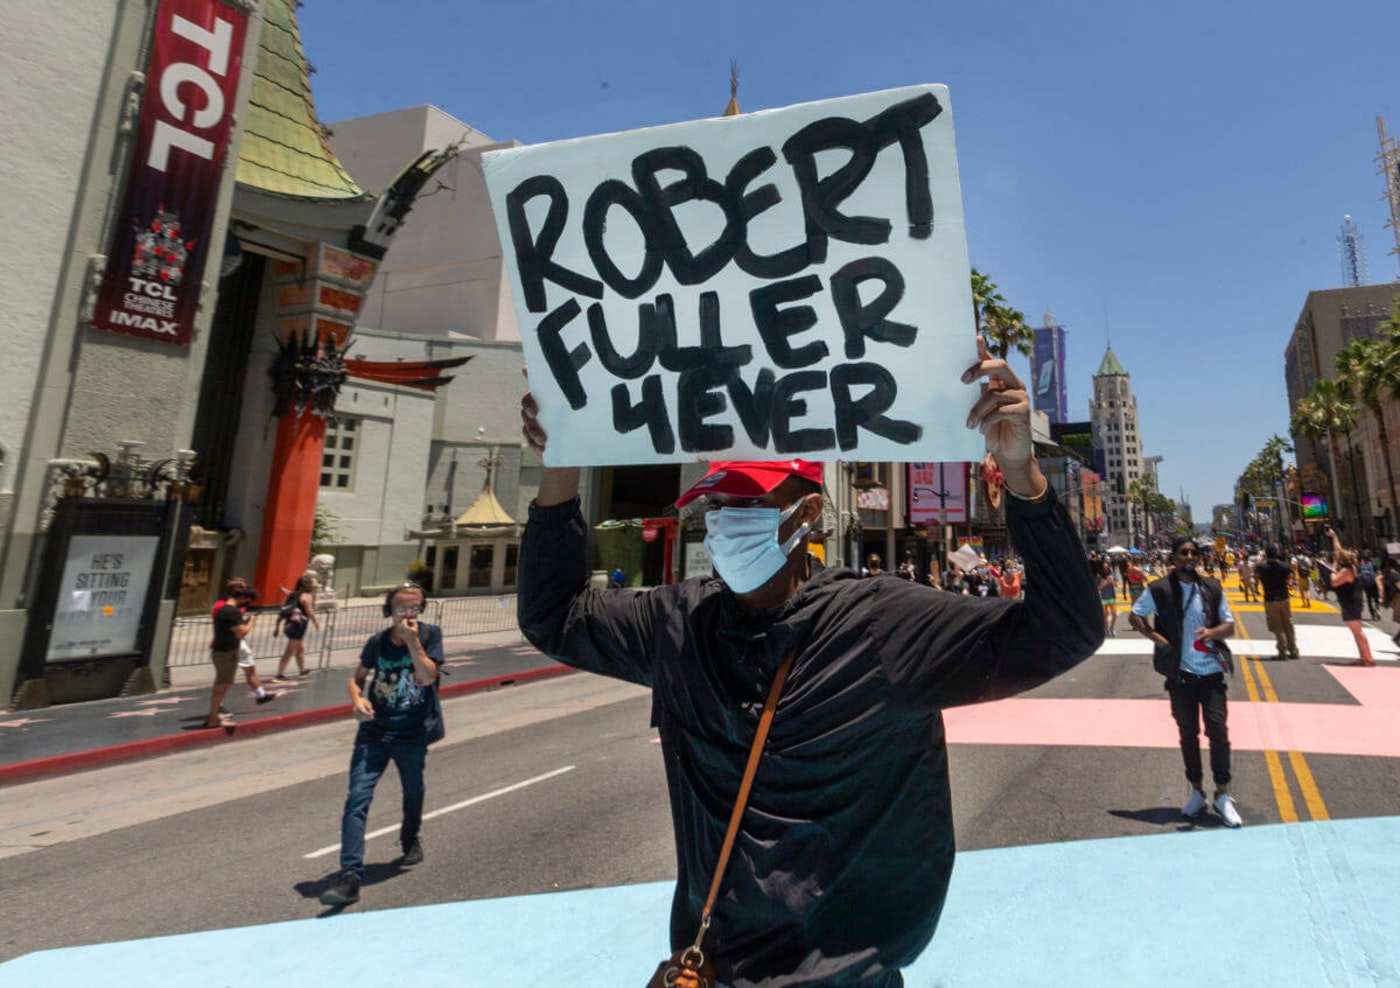 "A demonstrator carries a sign reading: ""Robert Fuller 4Ever"" during an All Black Lives Matter march organized by black members of the LGBTQ community, in the Hollywood section of Los Angeles on Sunday, June 14, 2020. (AP Photo/Damian Dovarganes)"